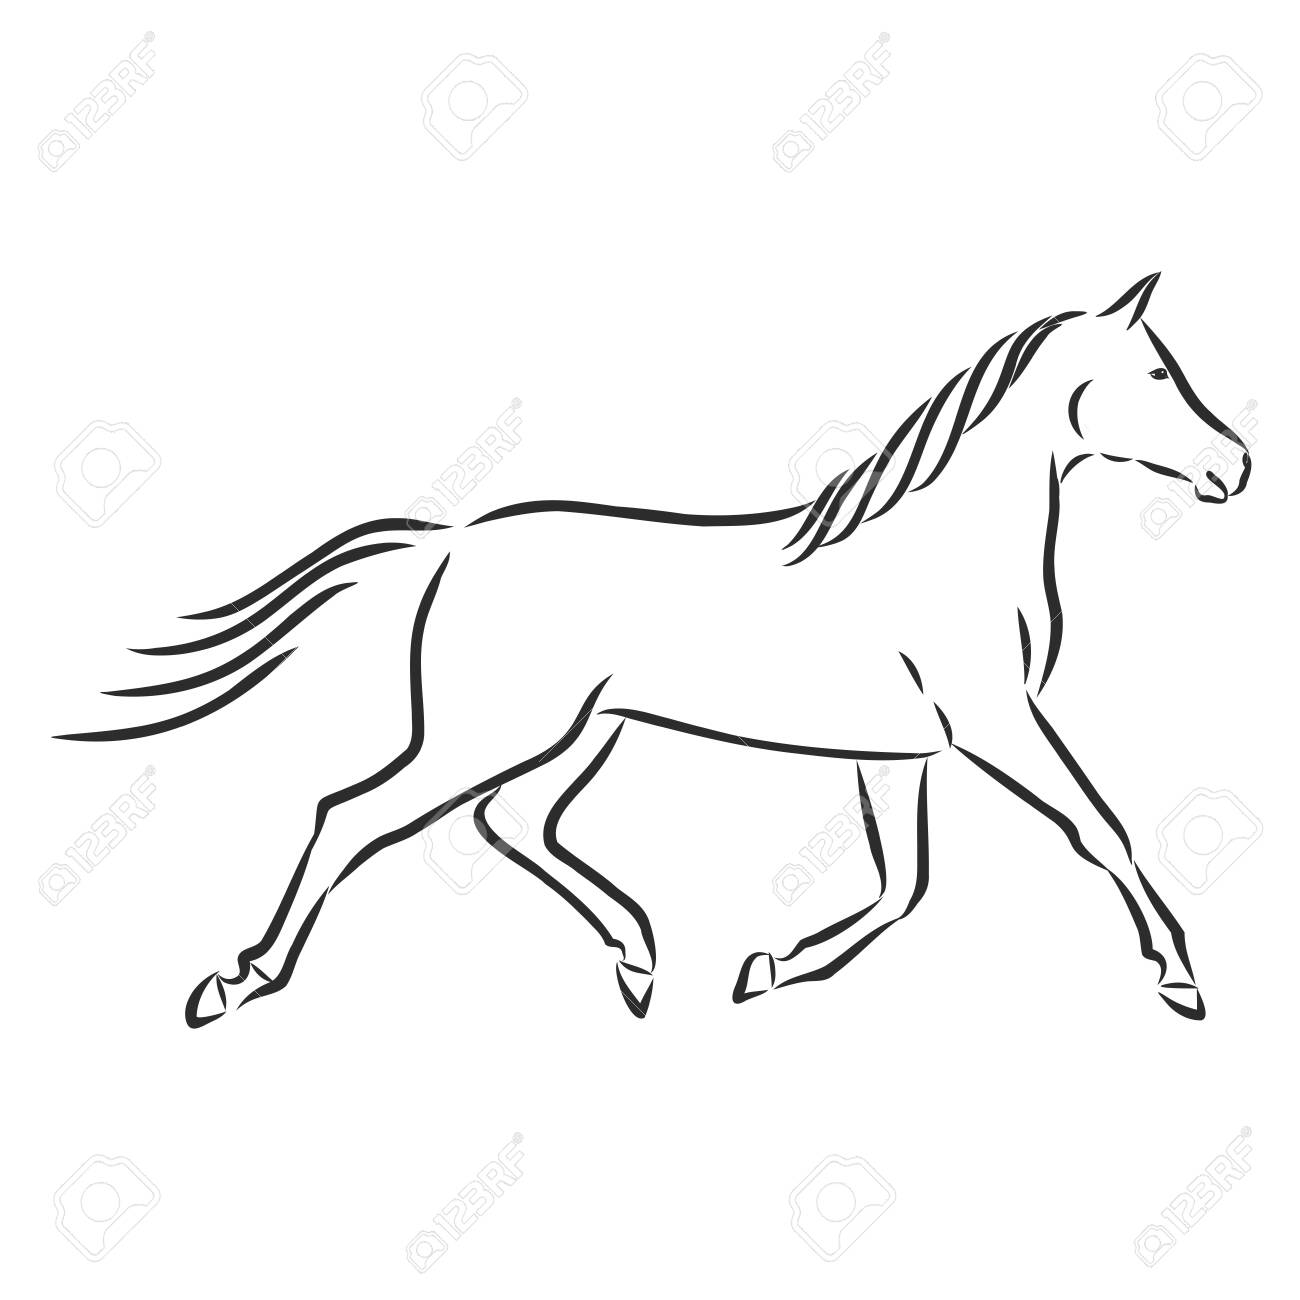 Beautiful Running Horse Silhouette Pet Vector Sketch Illustration Royalty Free Cliparts Vectors And Stock Illustration Image 141470904